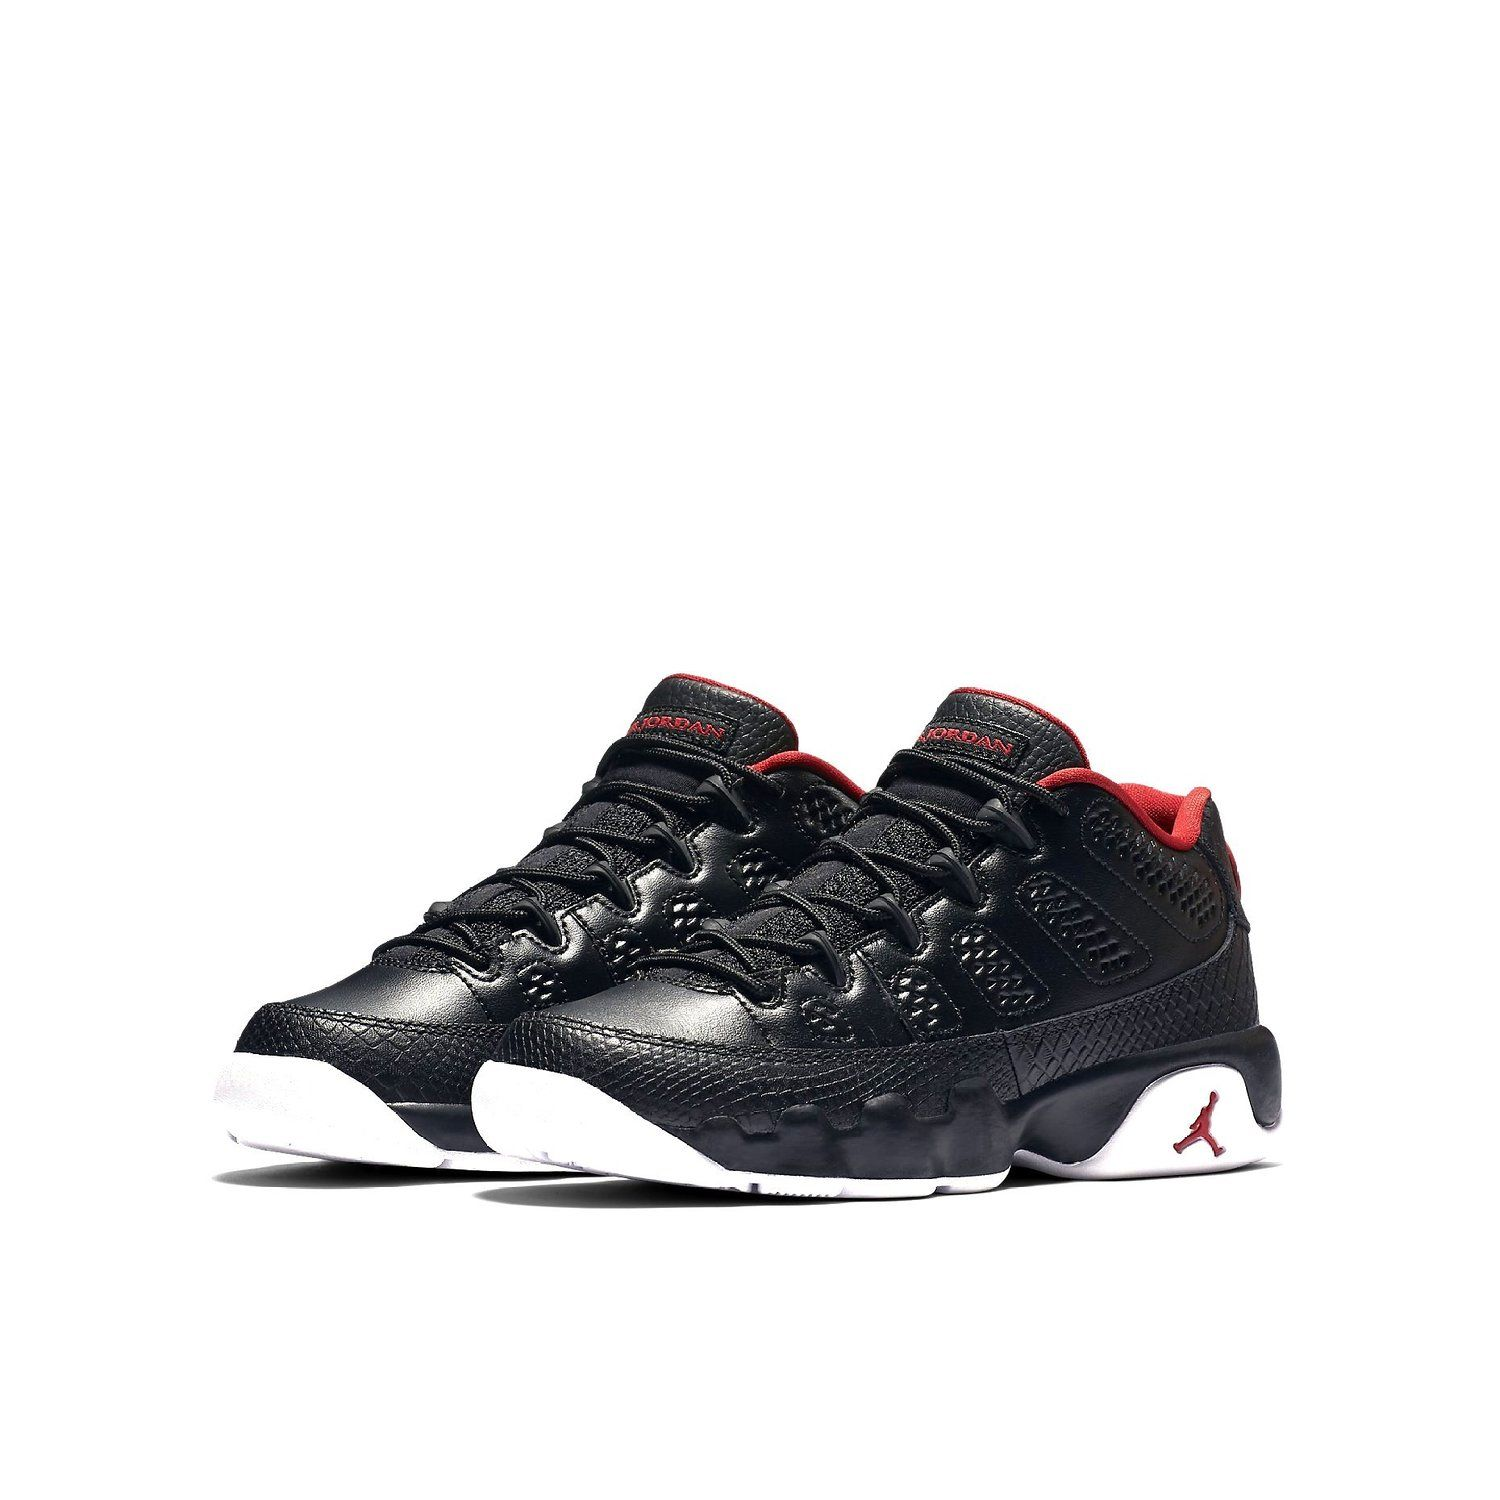 0faf539c9ec72 Amazon.com: Nike Jordan Kids Air Jordan 9 Retro Low Bg Basketball ...